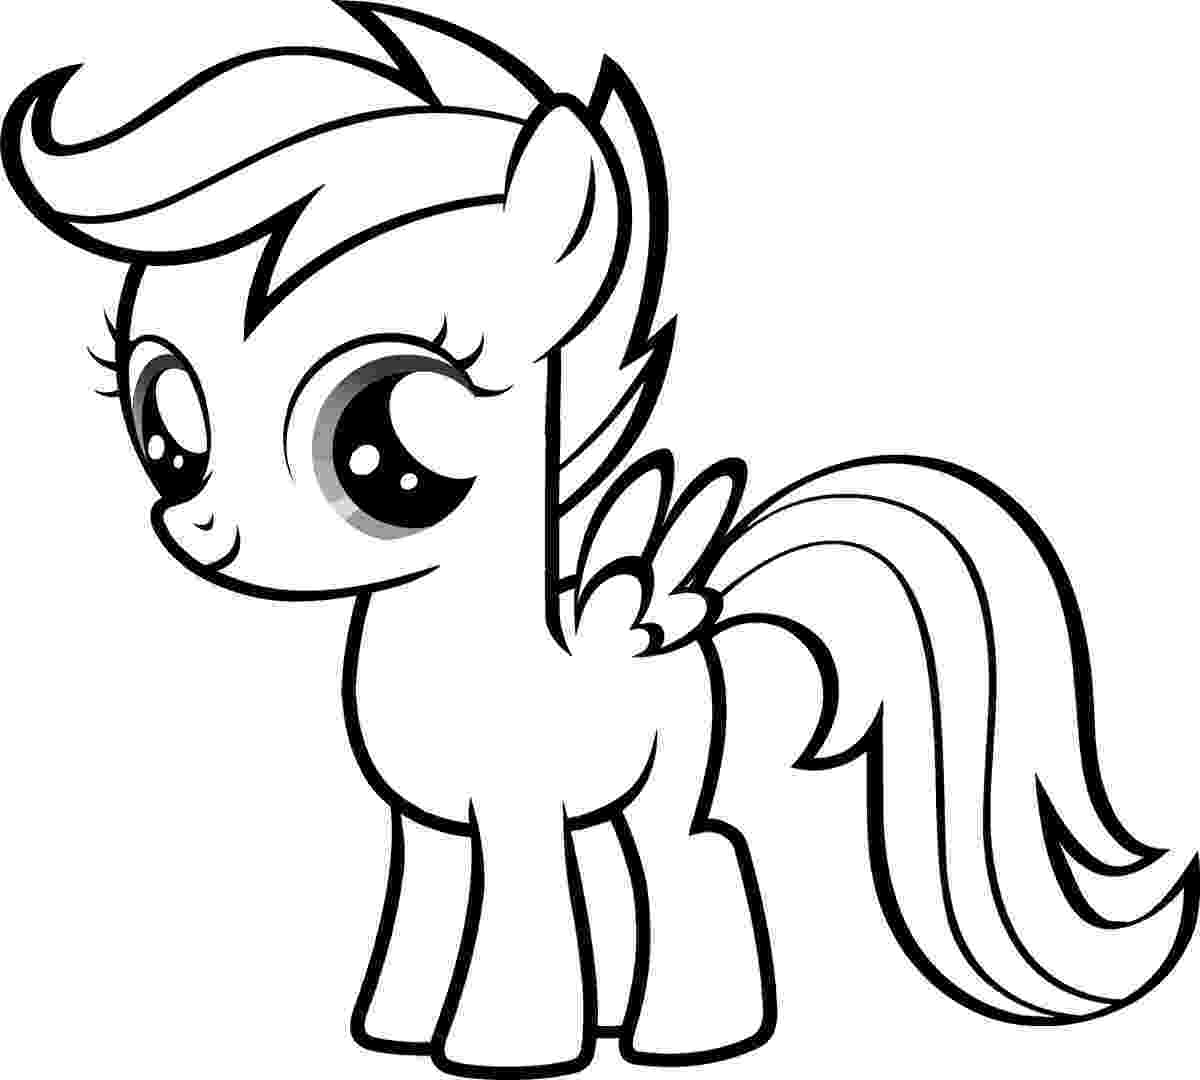 pony picture to color free printable my little pony coloring pages for kids to color picture pony